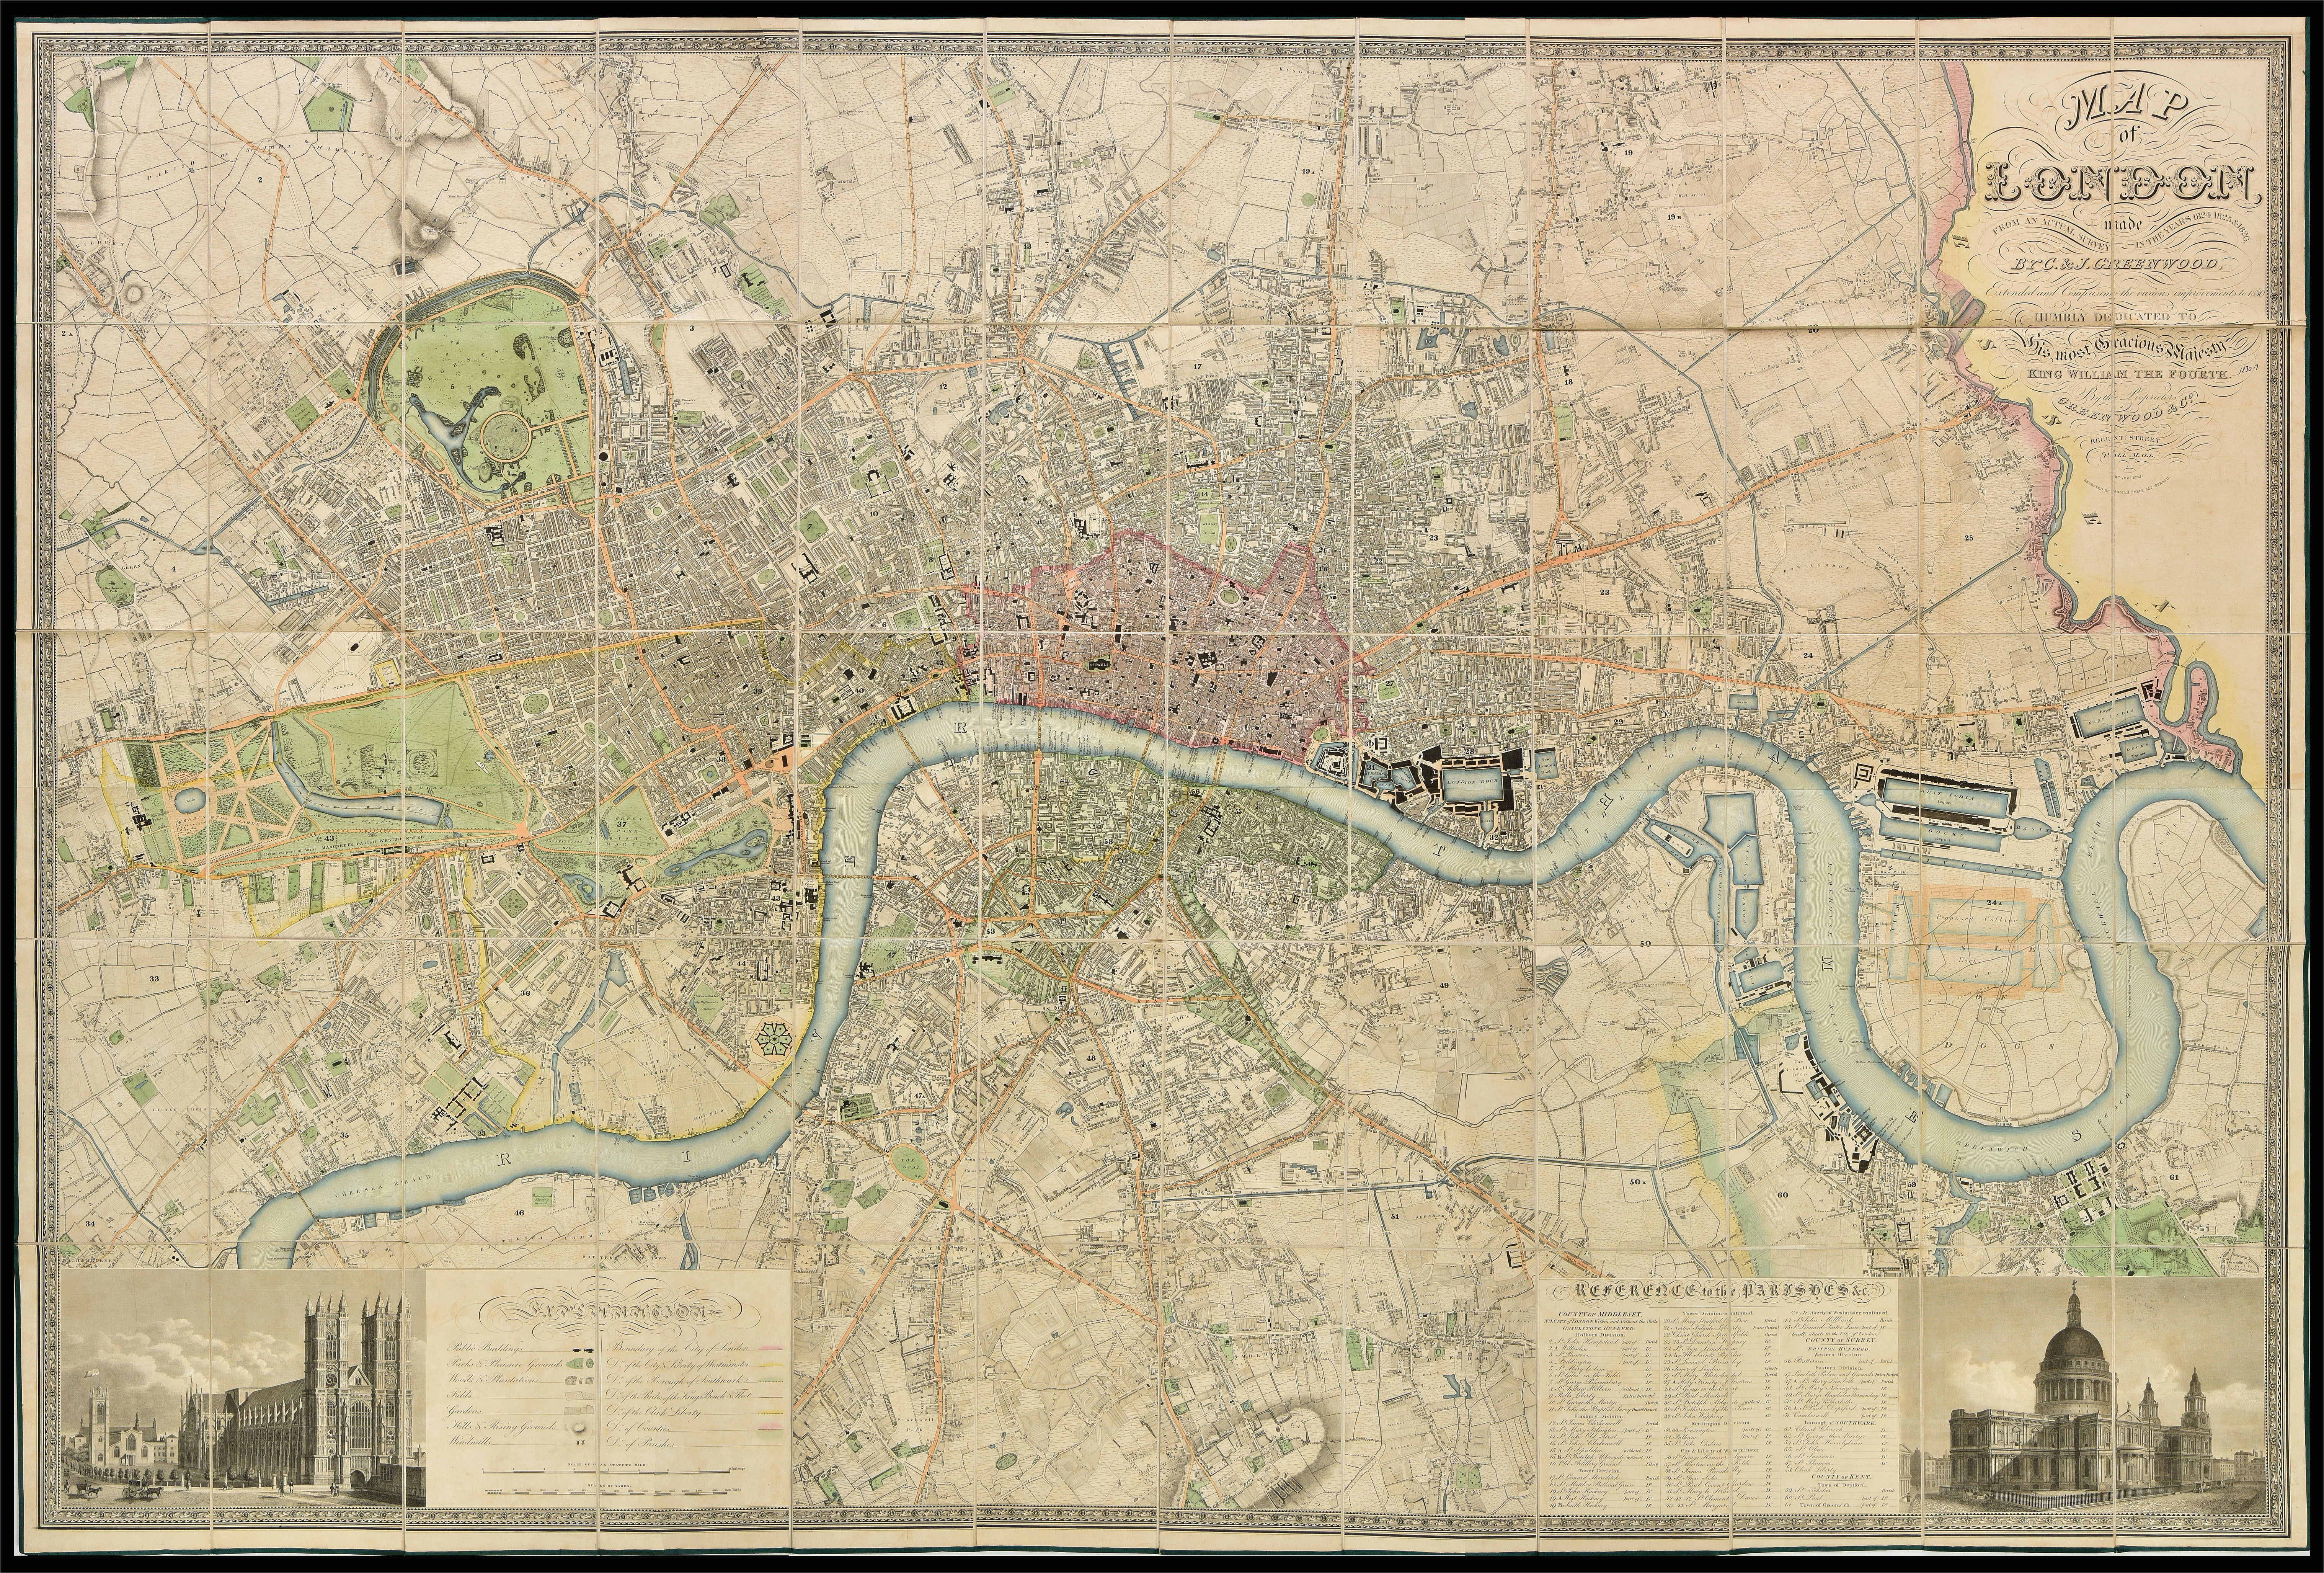 fascinating 1830 map shows how vast swathes of the capital were